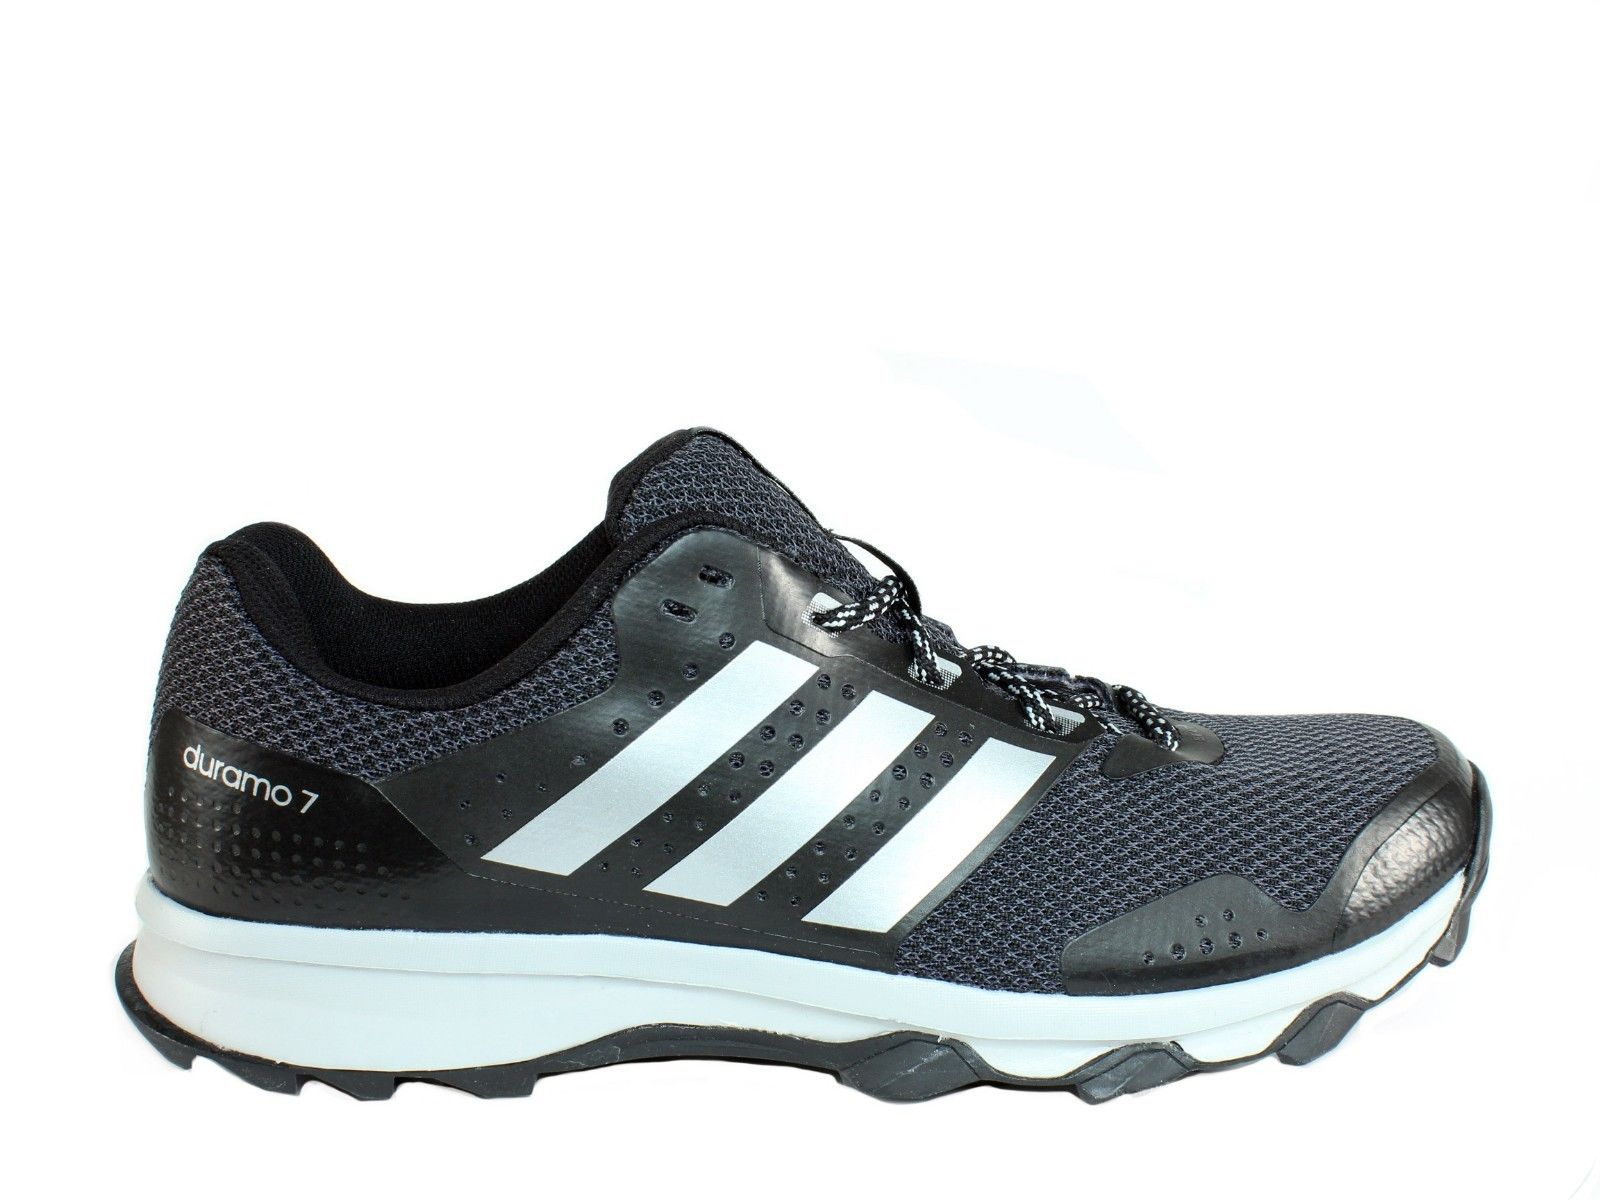 511d0e76a528 Adidas DURAMO 7 Trail M Men s Athletic Trail Running Shoes Sneakers Black  Silver